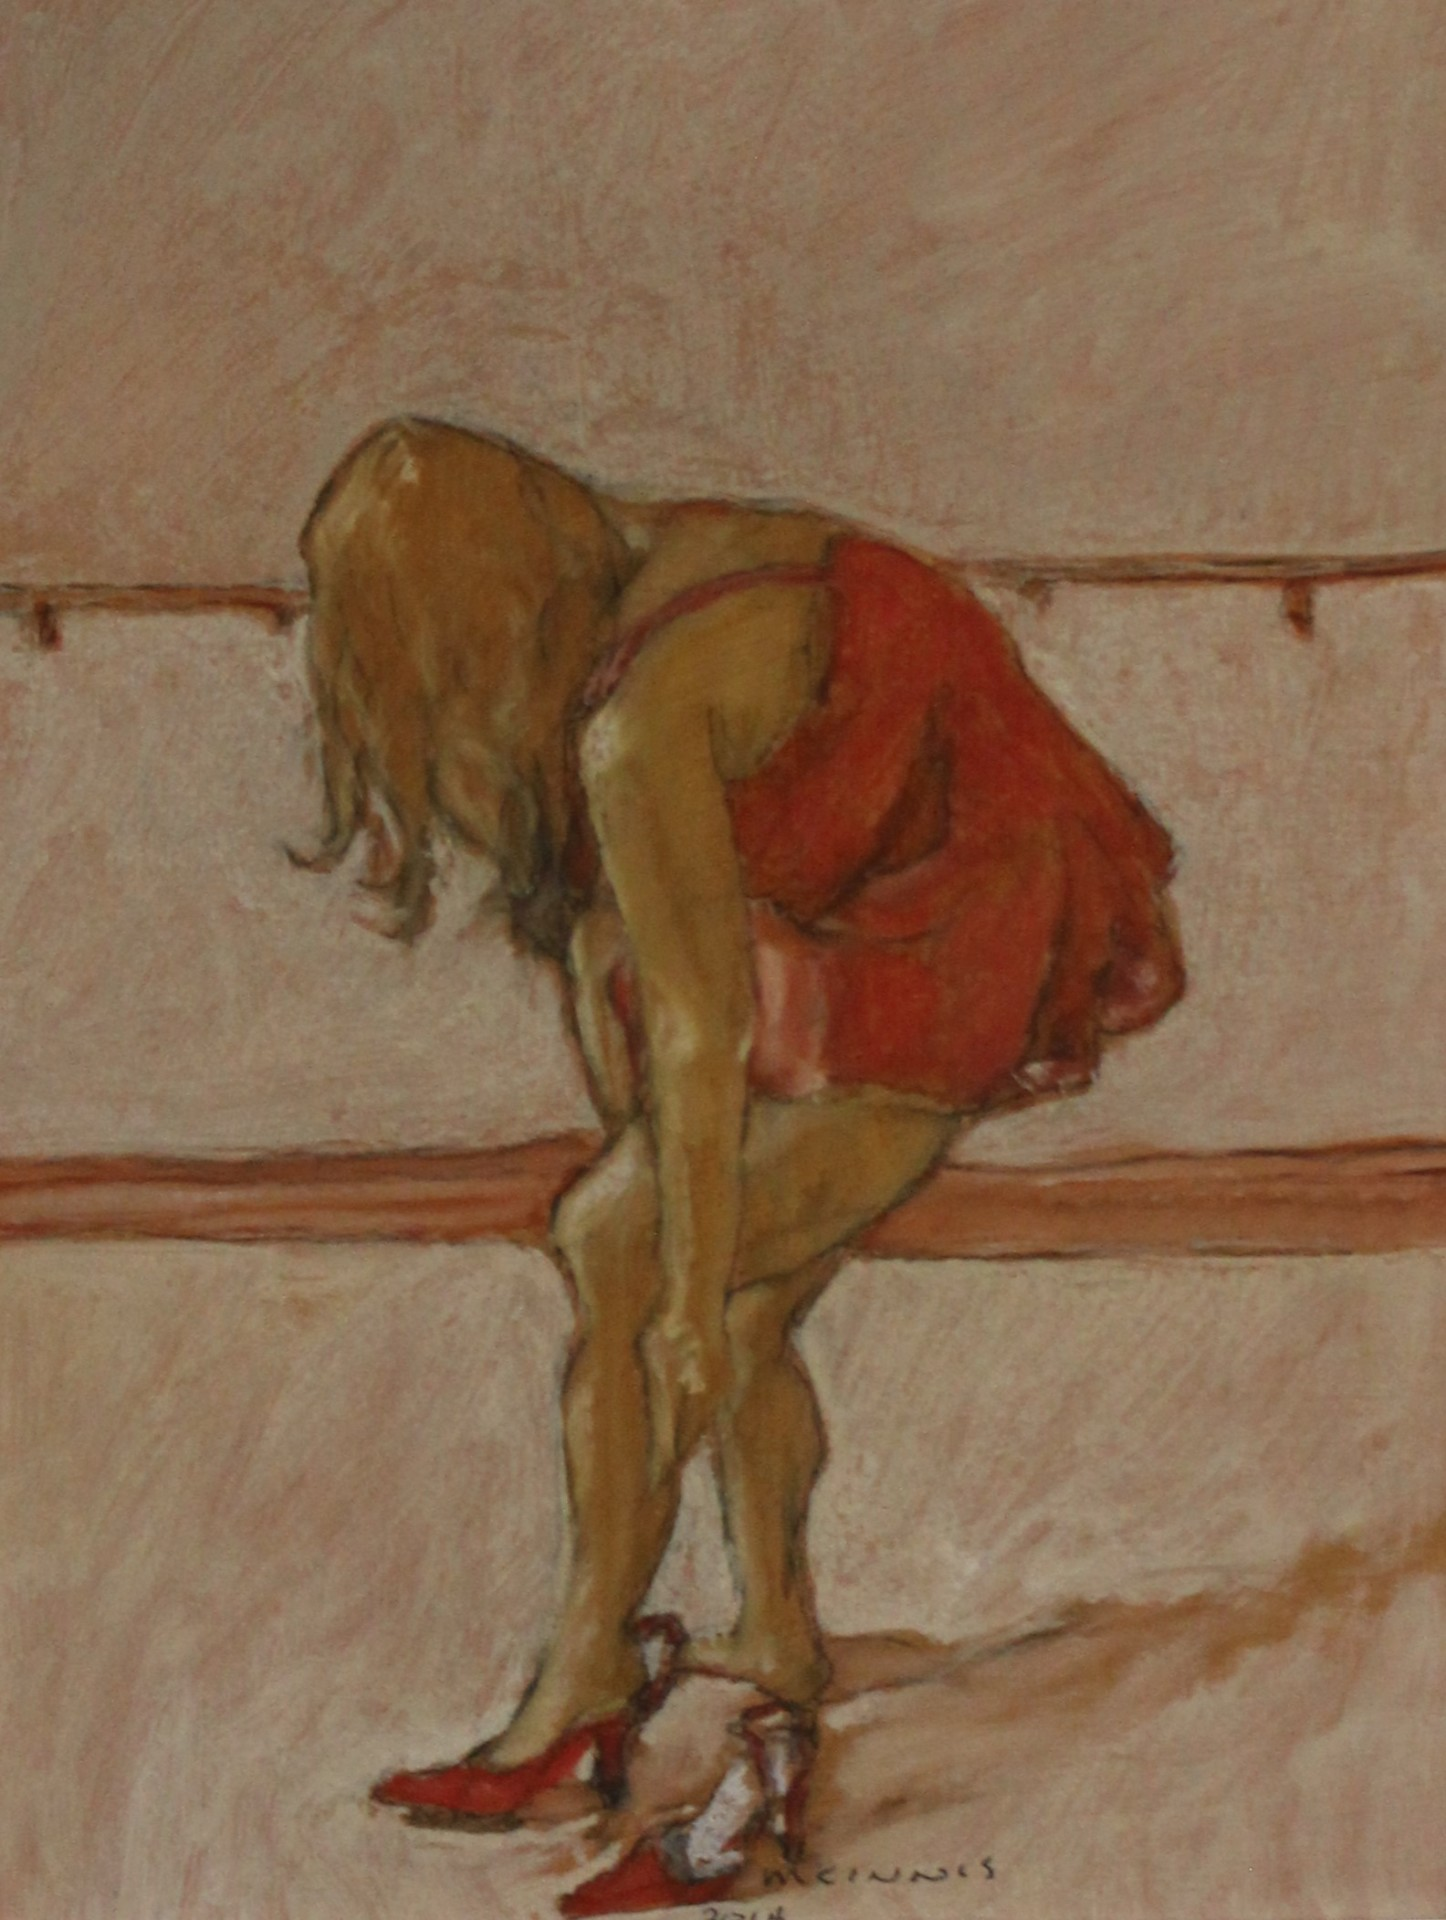 BALLERINA IN RED - 12X9 - OIL ON PANEL - 2014